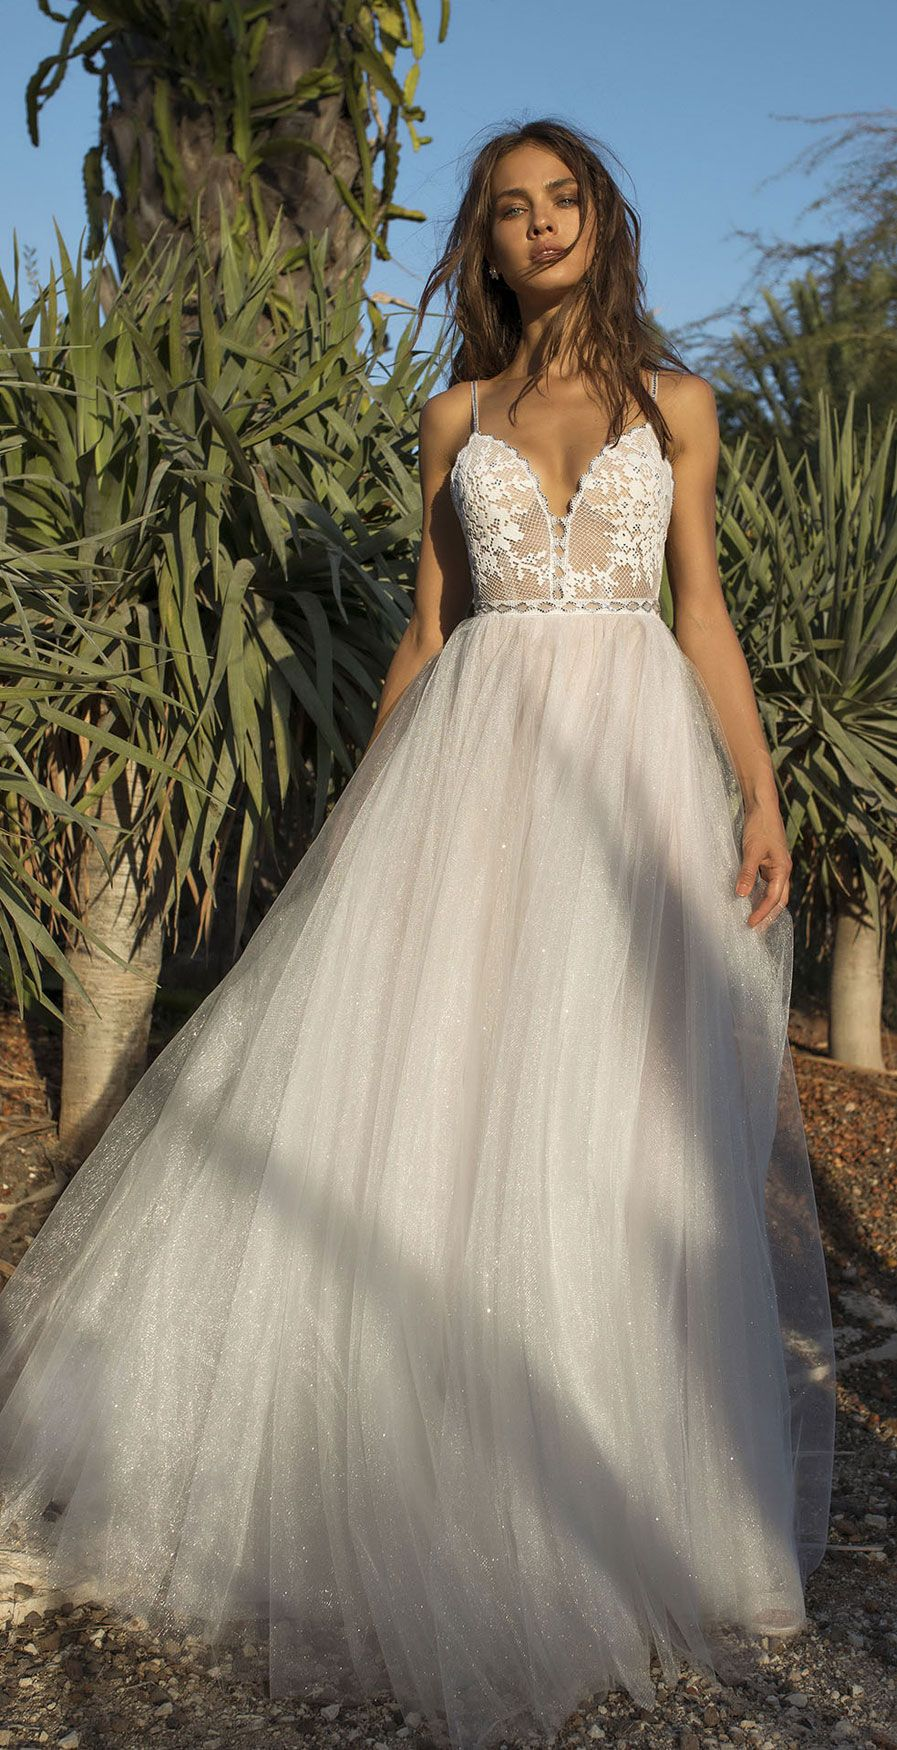 32 Beach Wedding Dresses Perfect For A Destination Wedding